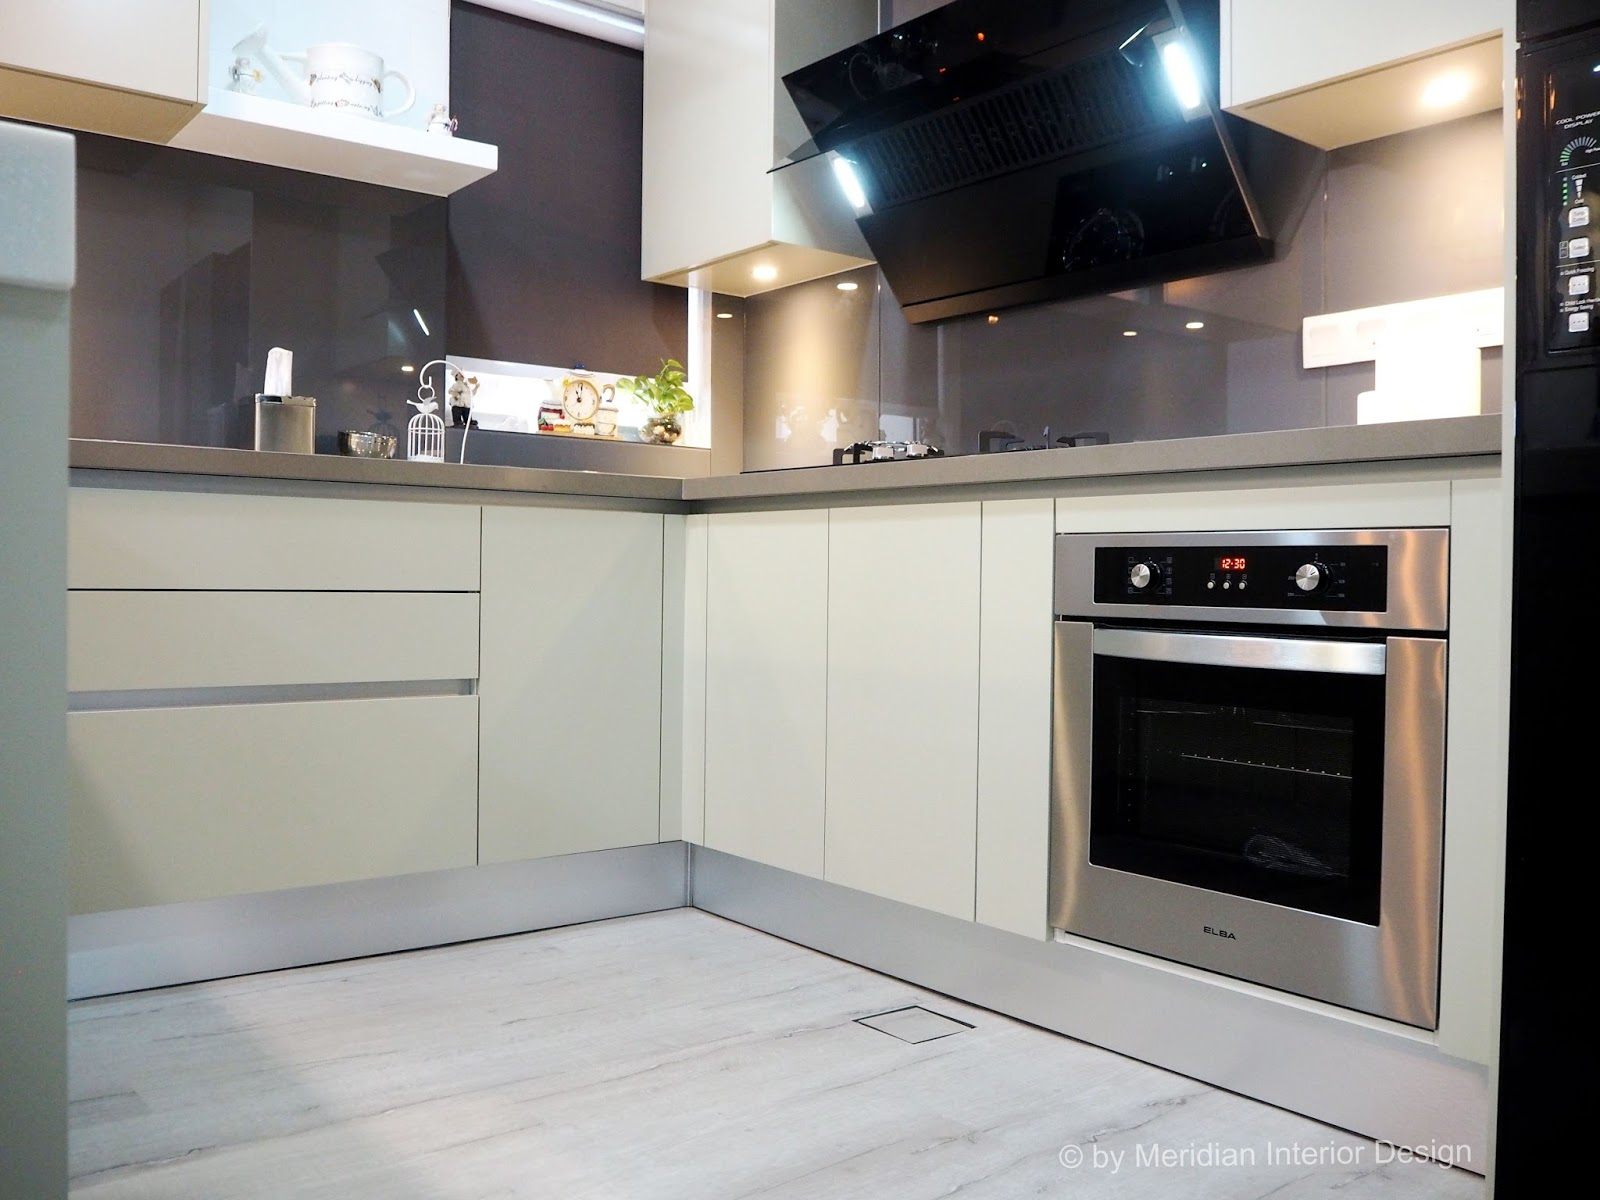 Meridian interior design and kitchen design in kuala for Built in oven kitchen cabinets